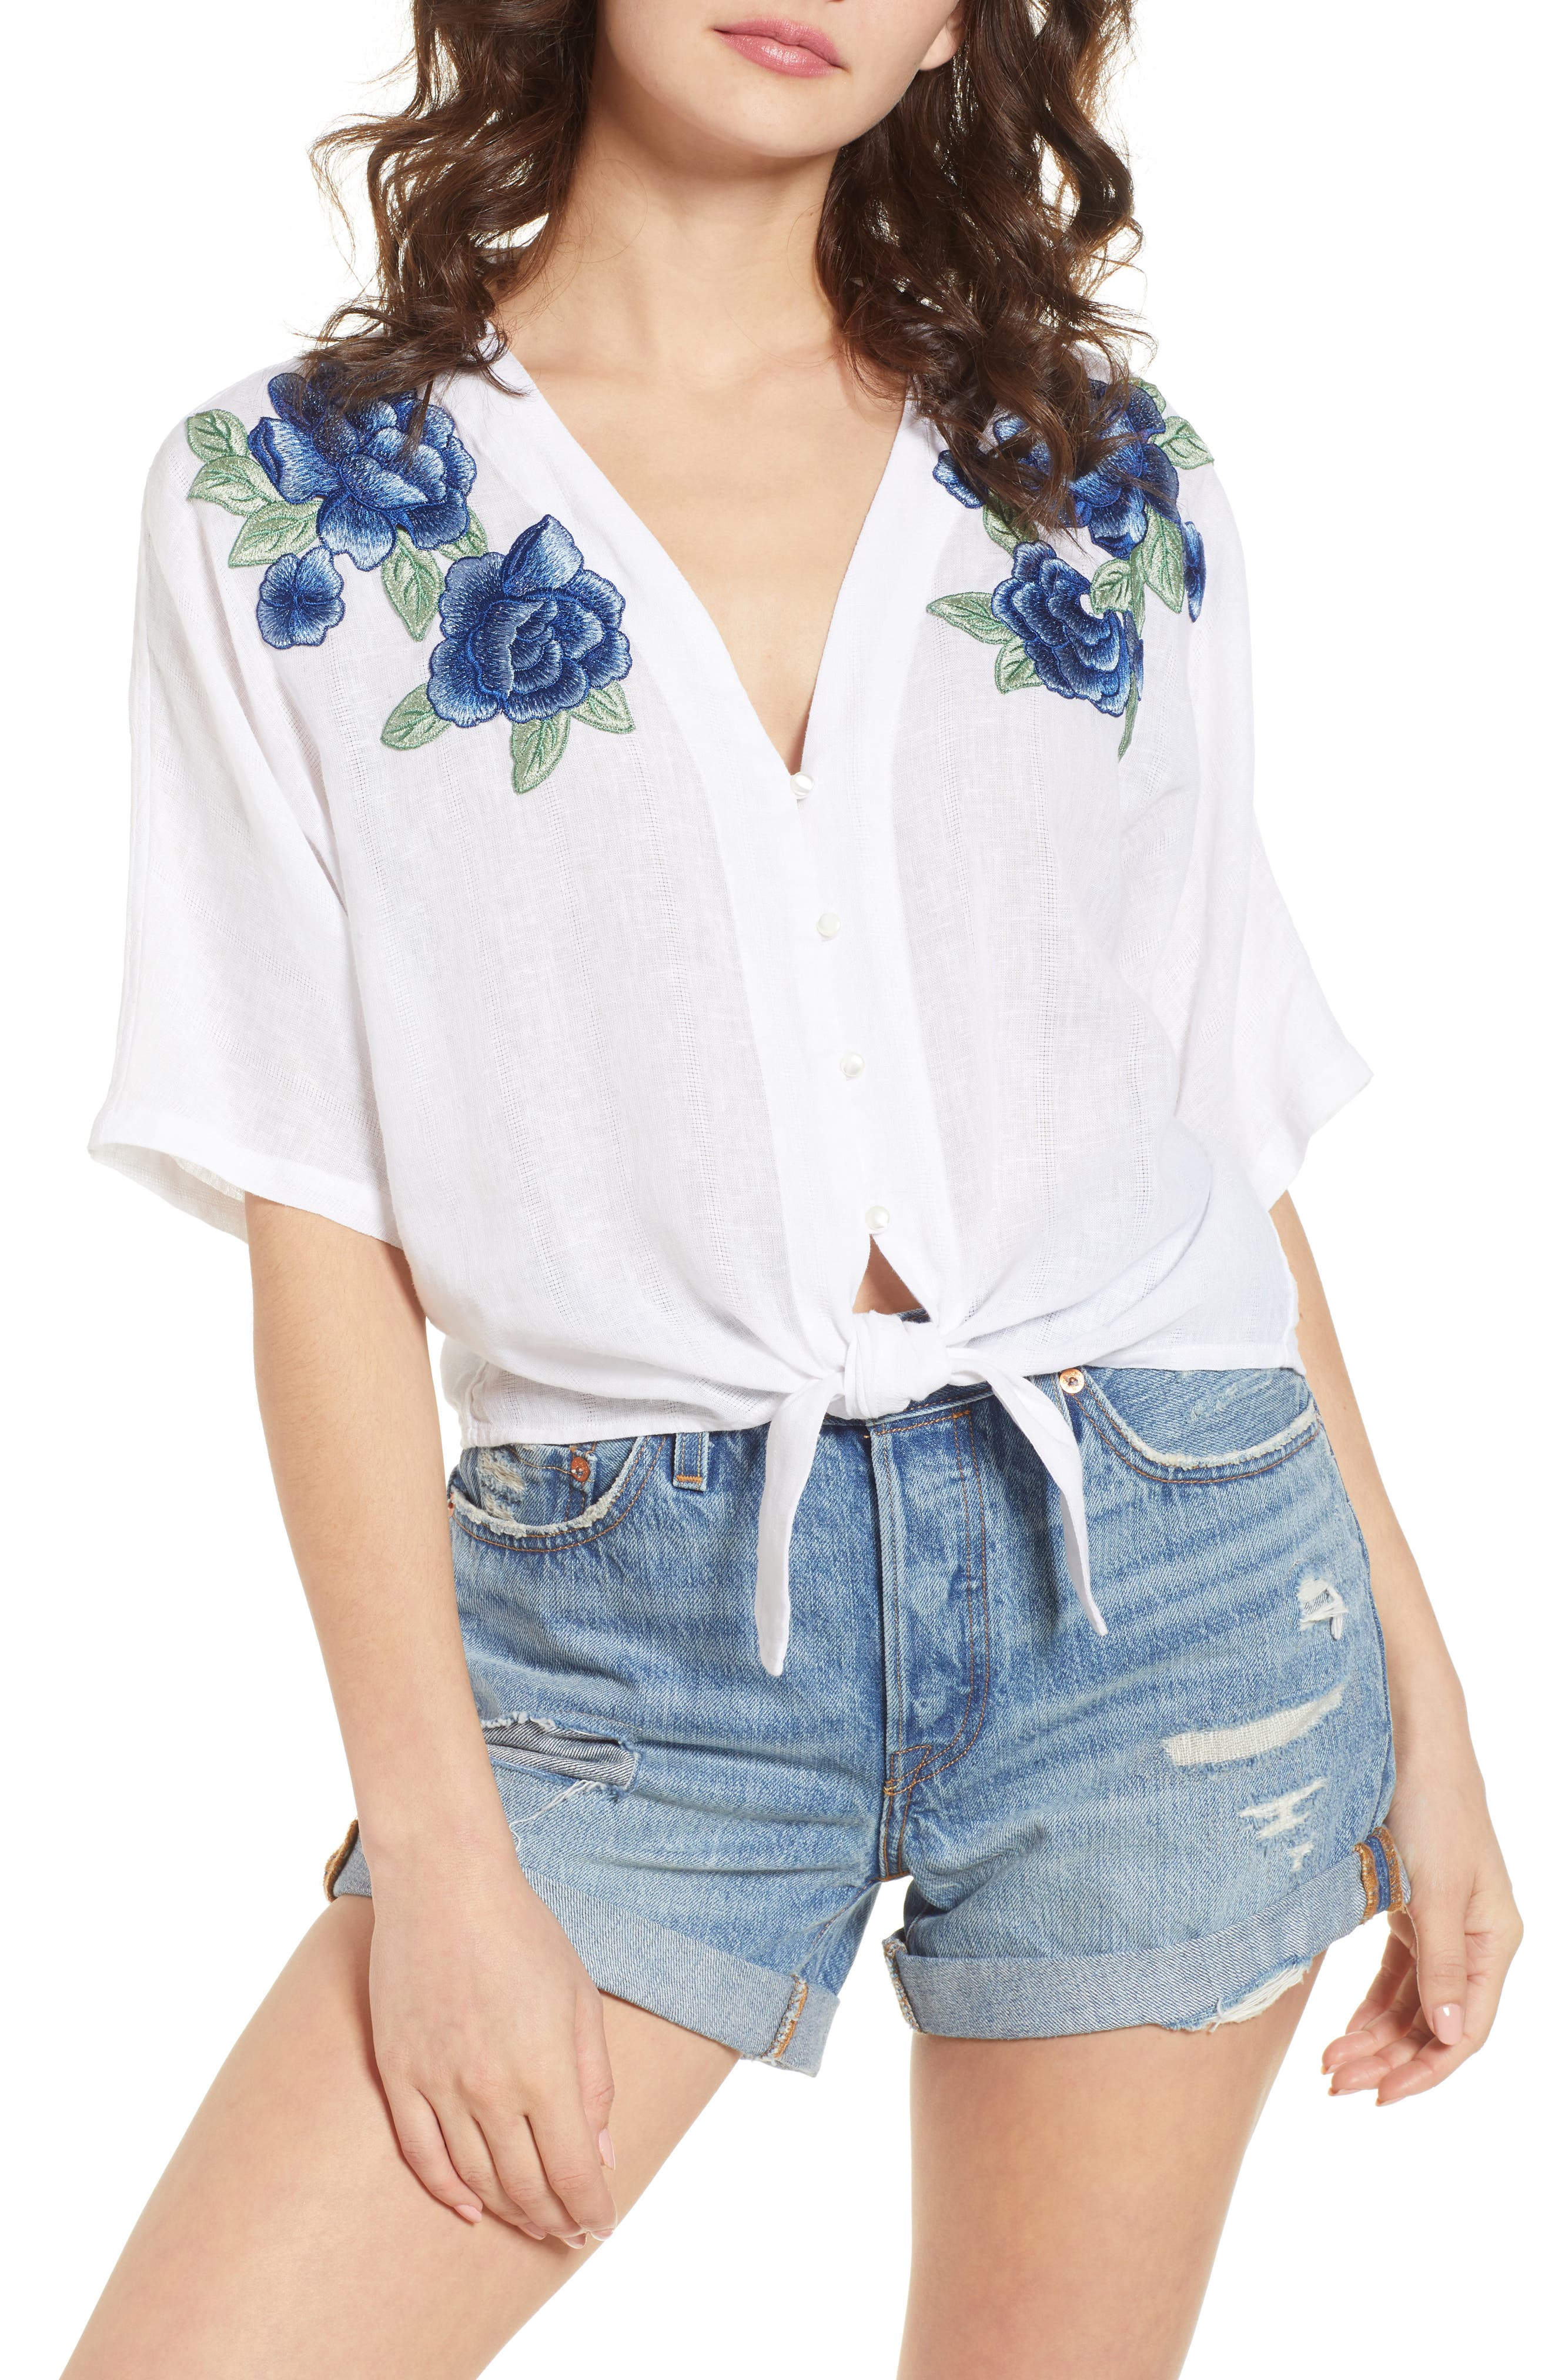 Thea Embroidered Tie Front Crop Top,                             Main thumbnail 1, color,                             Blue Rose Embroidery